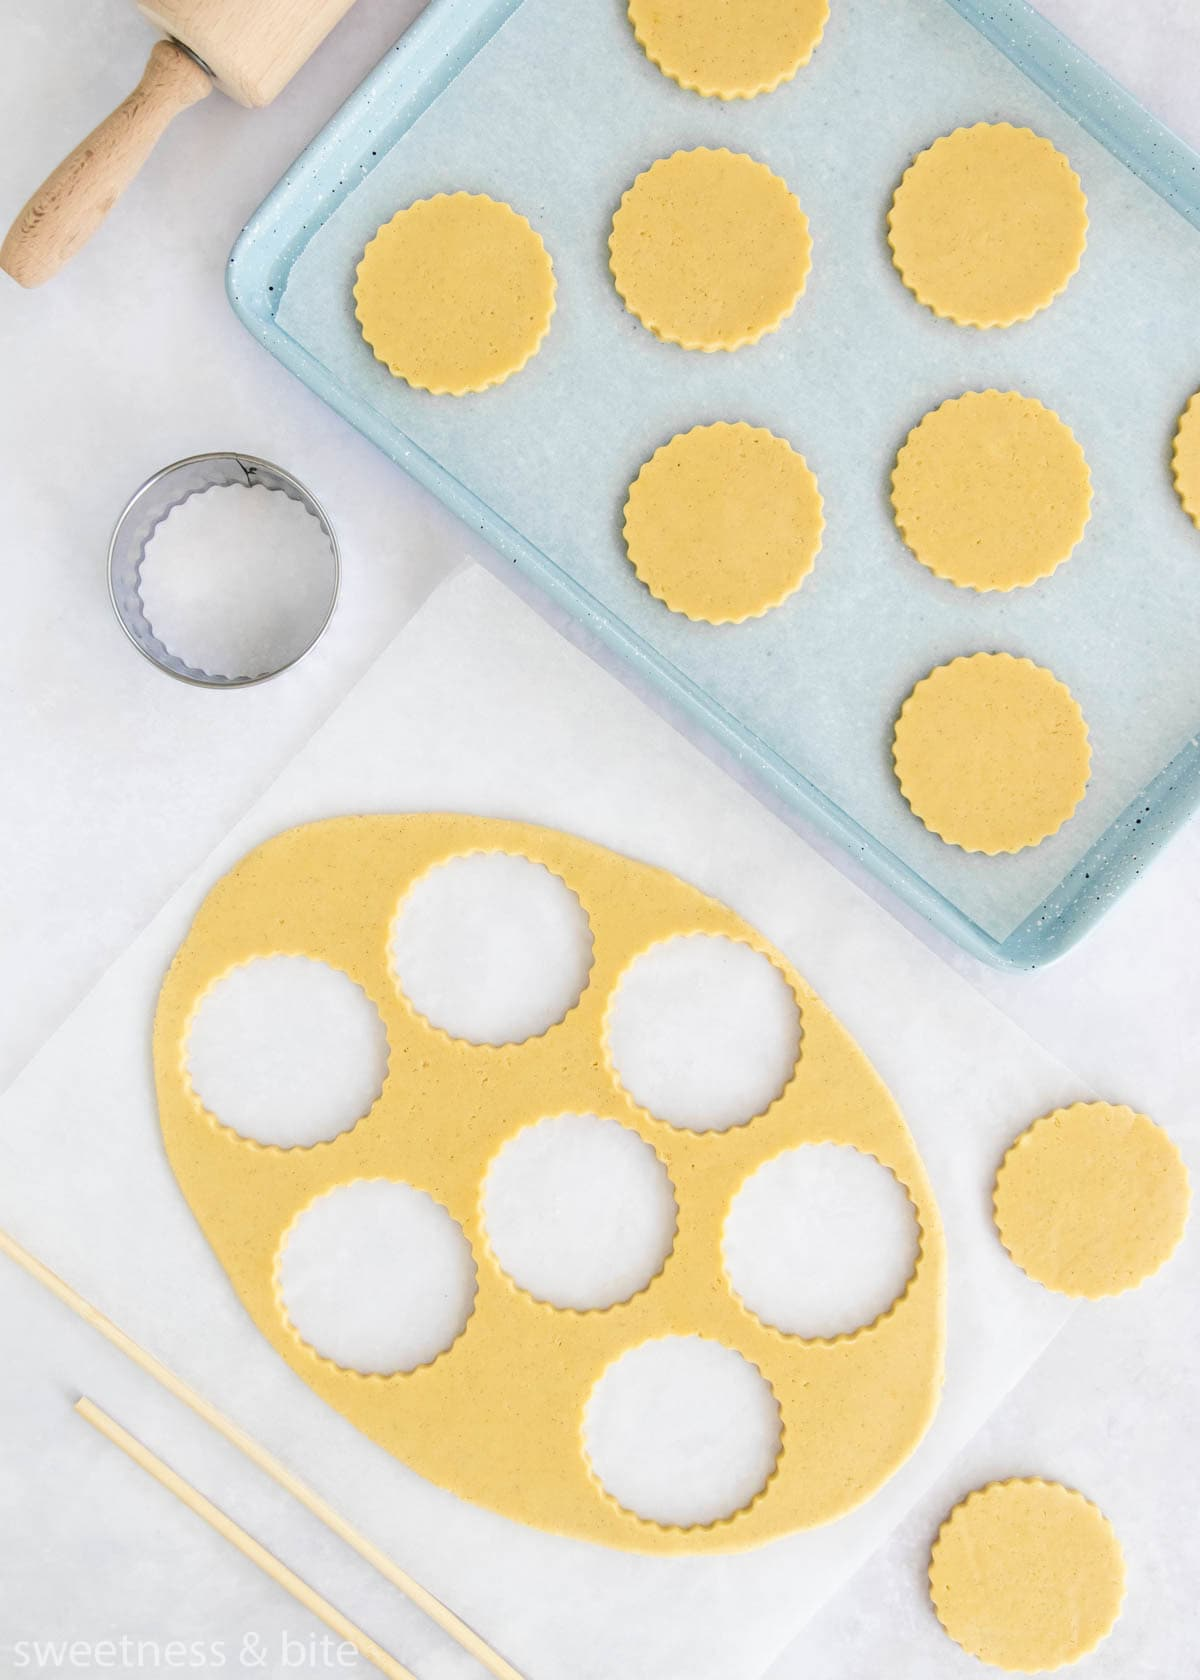 Rolled out cookie dough with scalloped circle shaped cookies cut out.